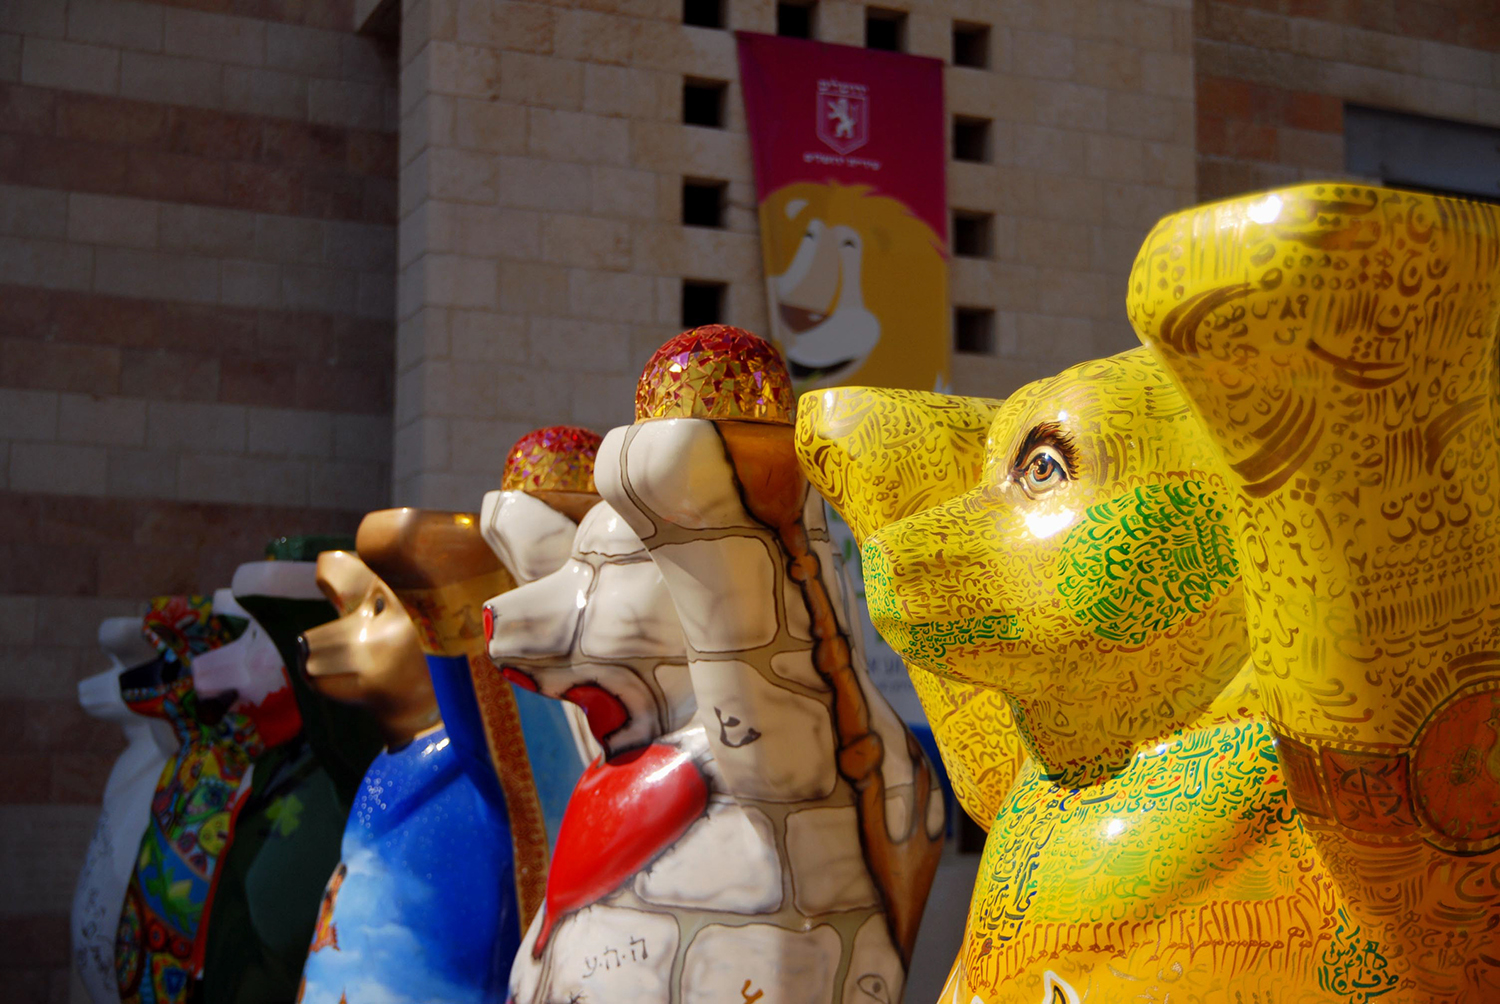 United Buddy Bears is an international art exhibition with more than 140 bears represented the UN countries, promoting tolerance and living in peace and harmony.